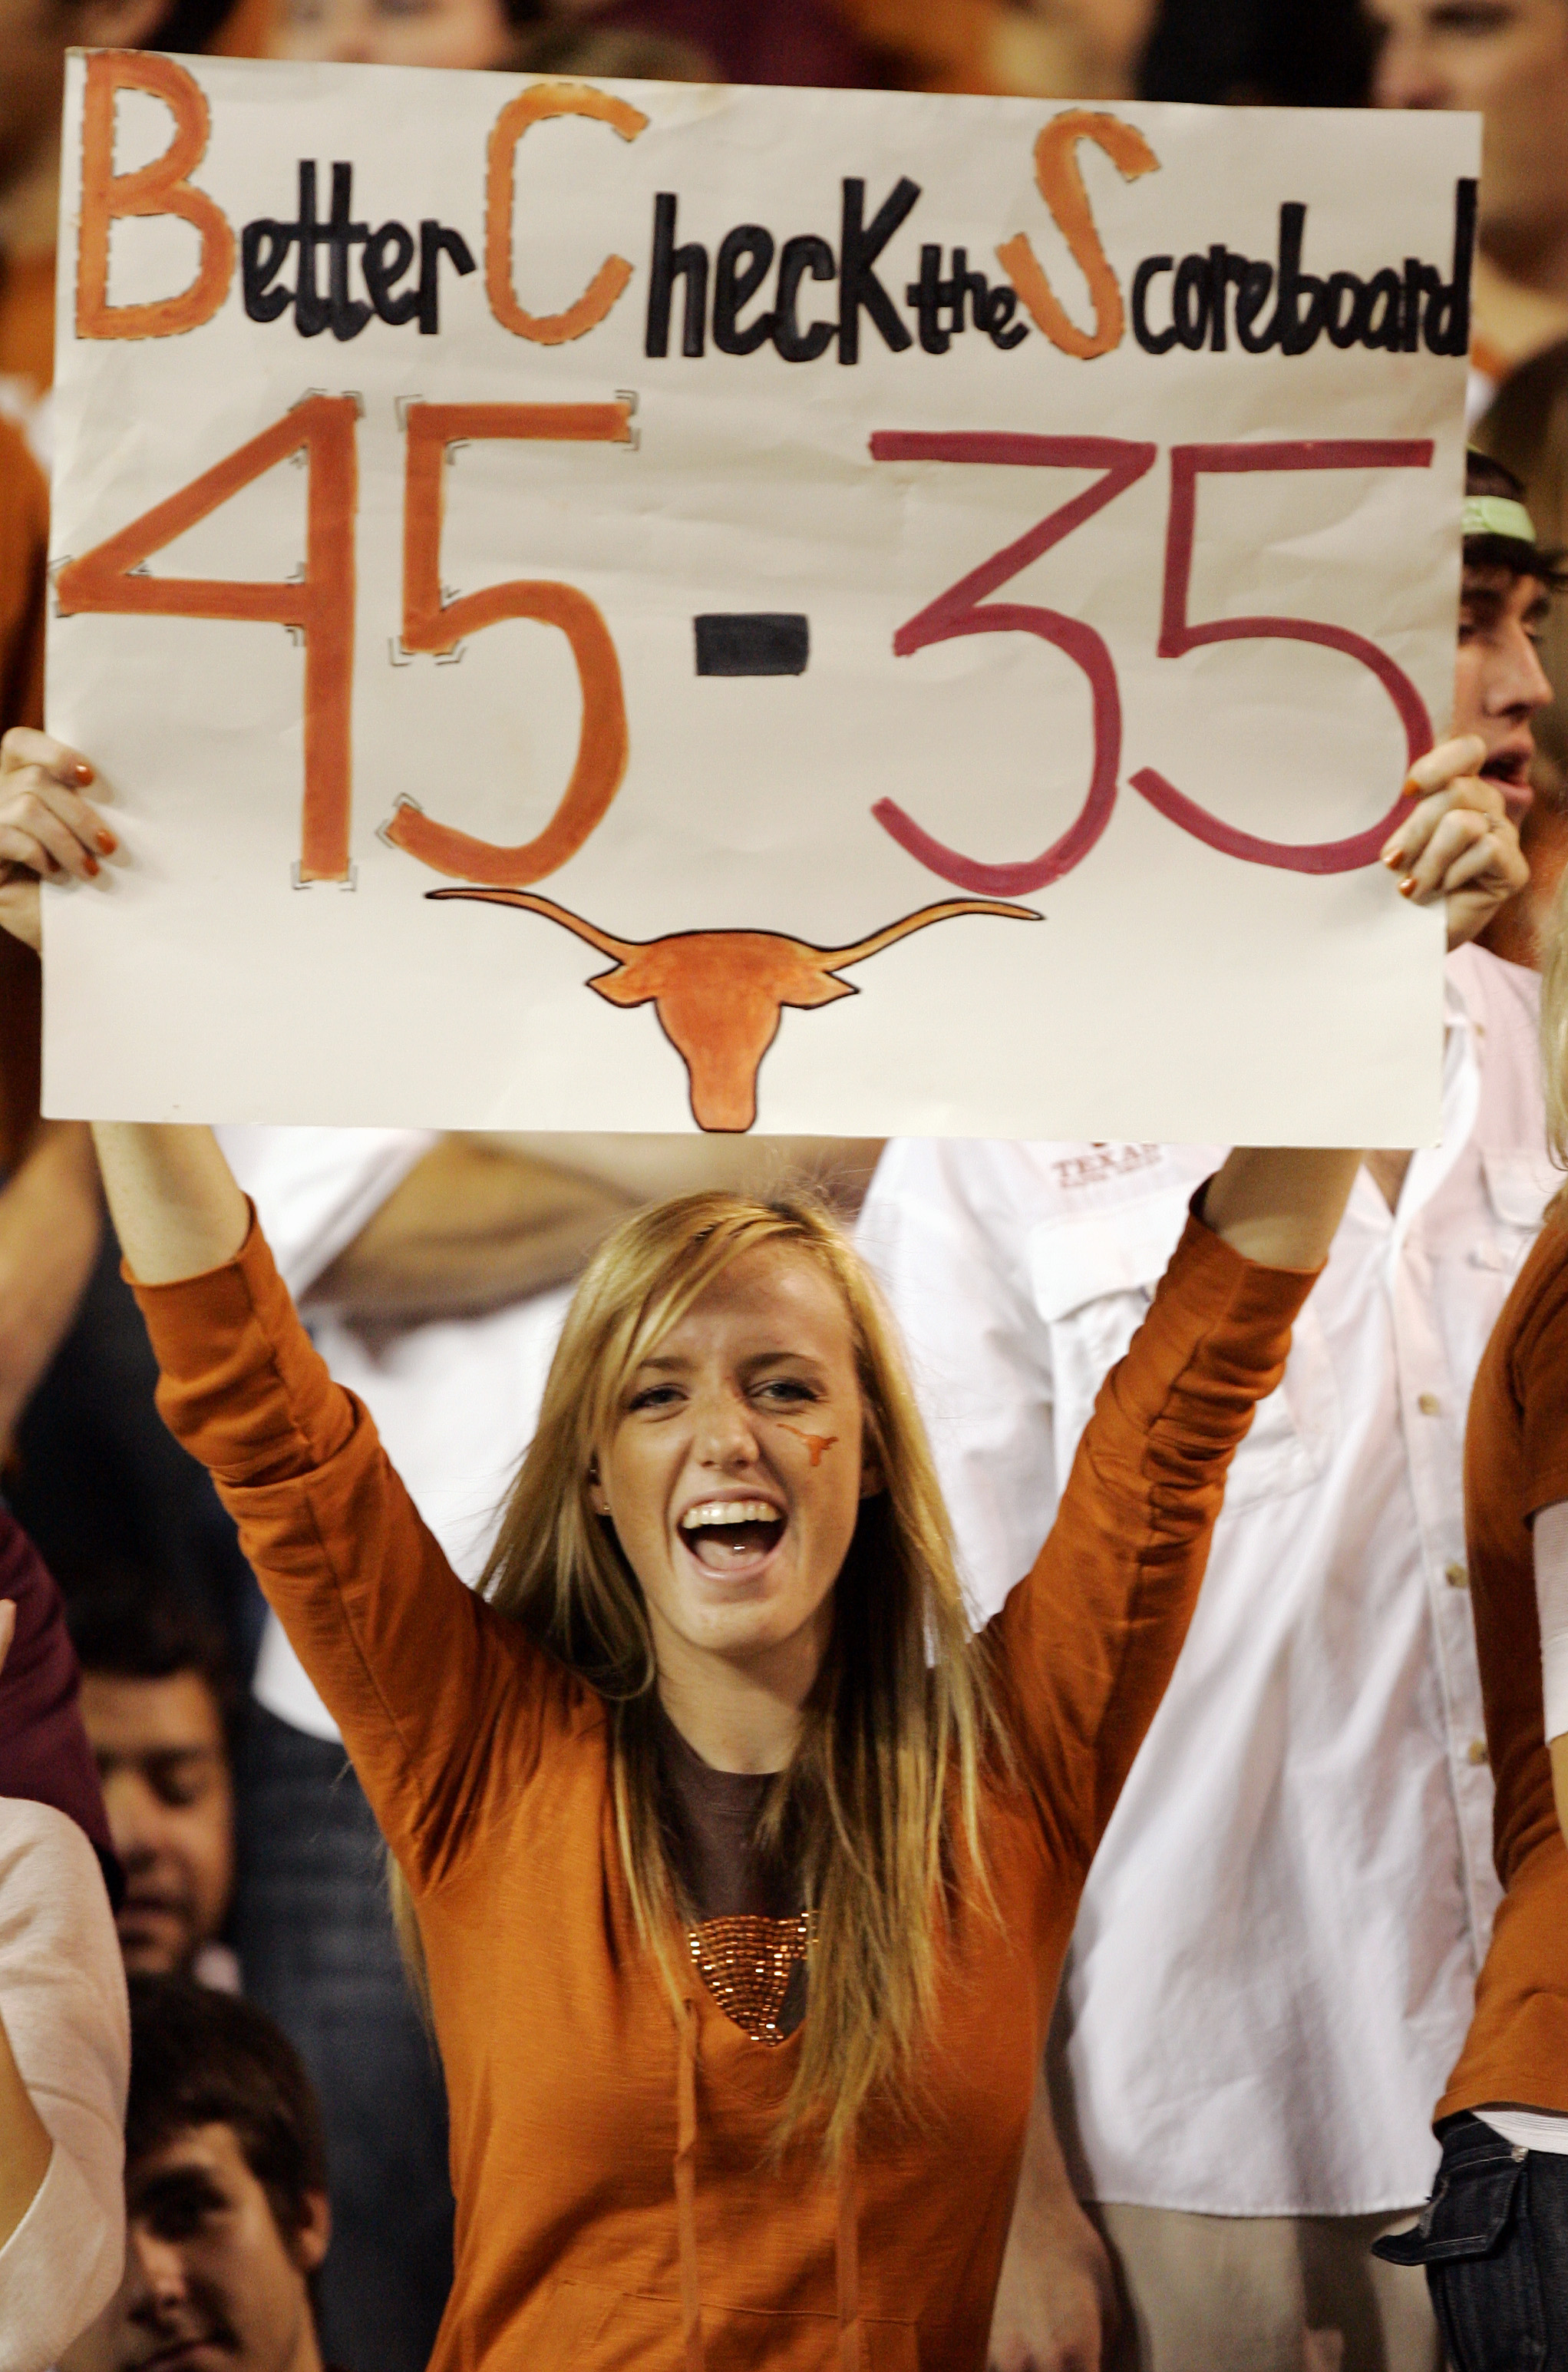 Nothing Texas did could remind the BCS enough about their 45-35 victory over Oklahoma in 2008.  The Sooners jumped Texas to go to the national championship game.